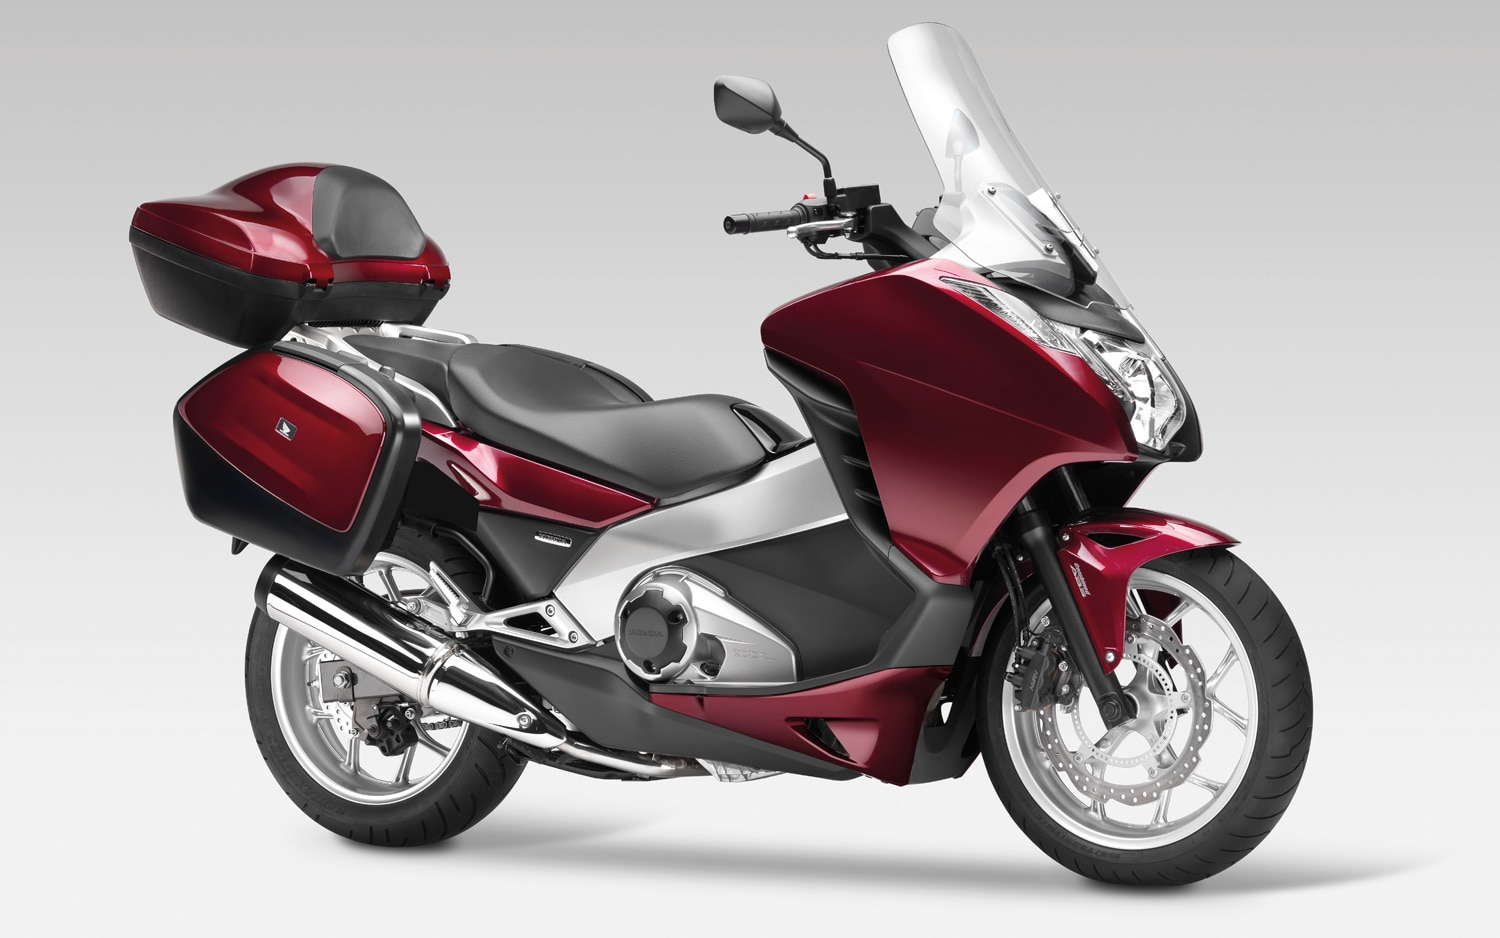 2012 Honda Integra Touring Motorcycle Side View11